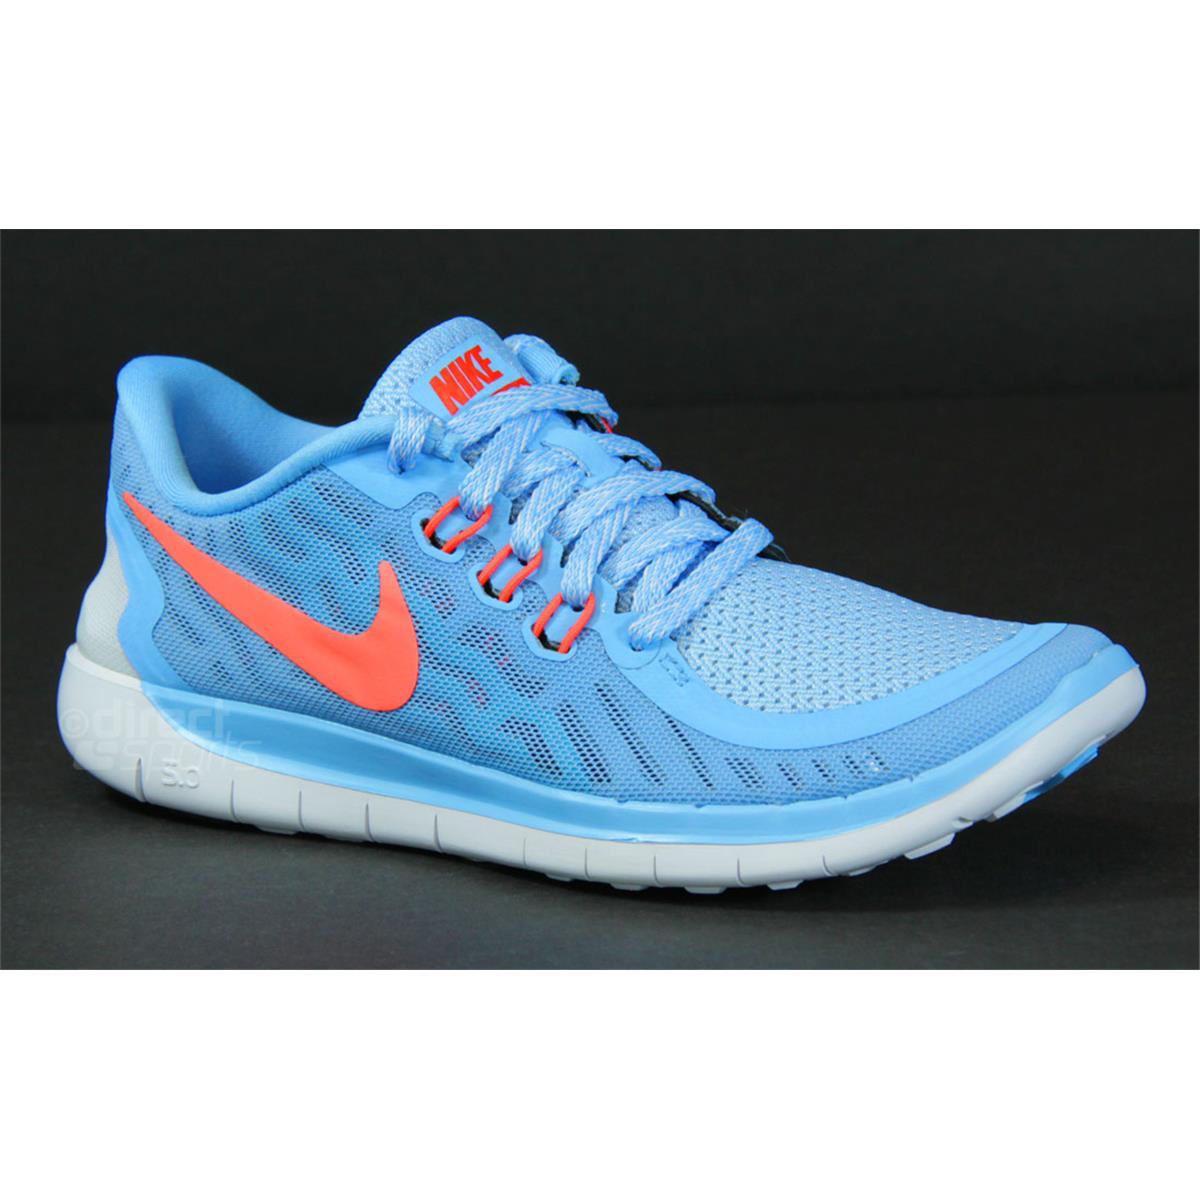 newest c1e47 b5c32 Nike Free 5.0 GS Junior Running Shoes (Blue)